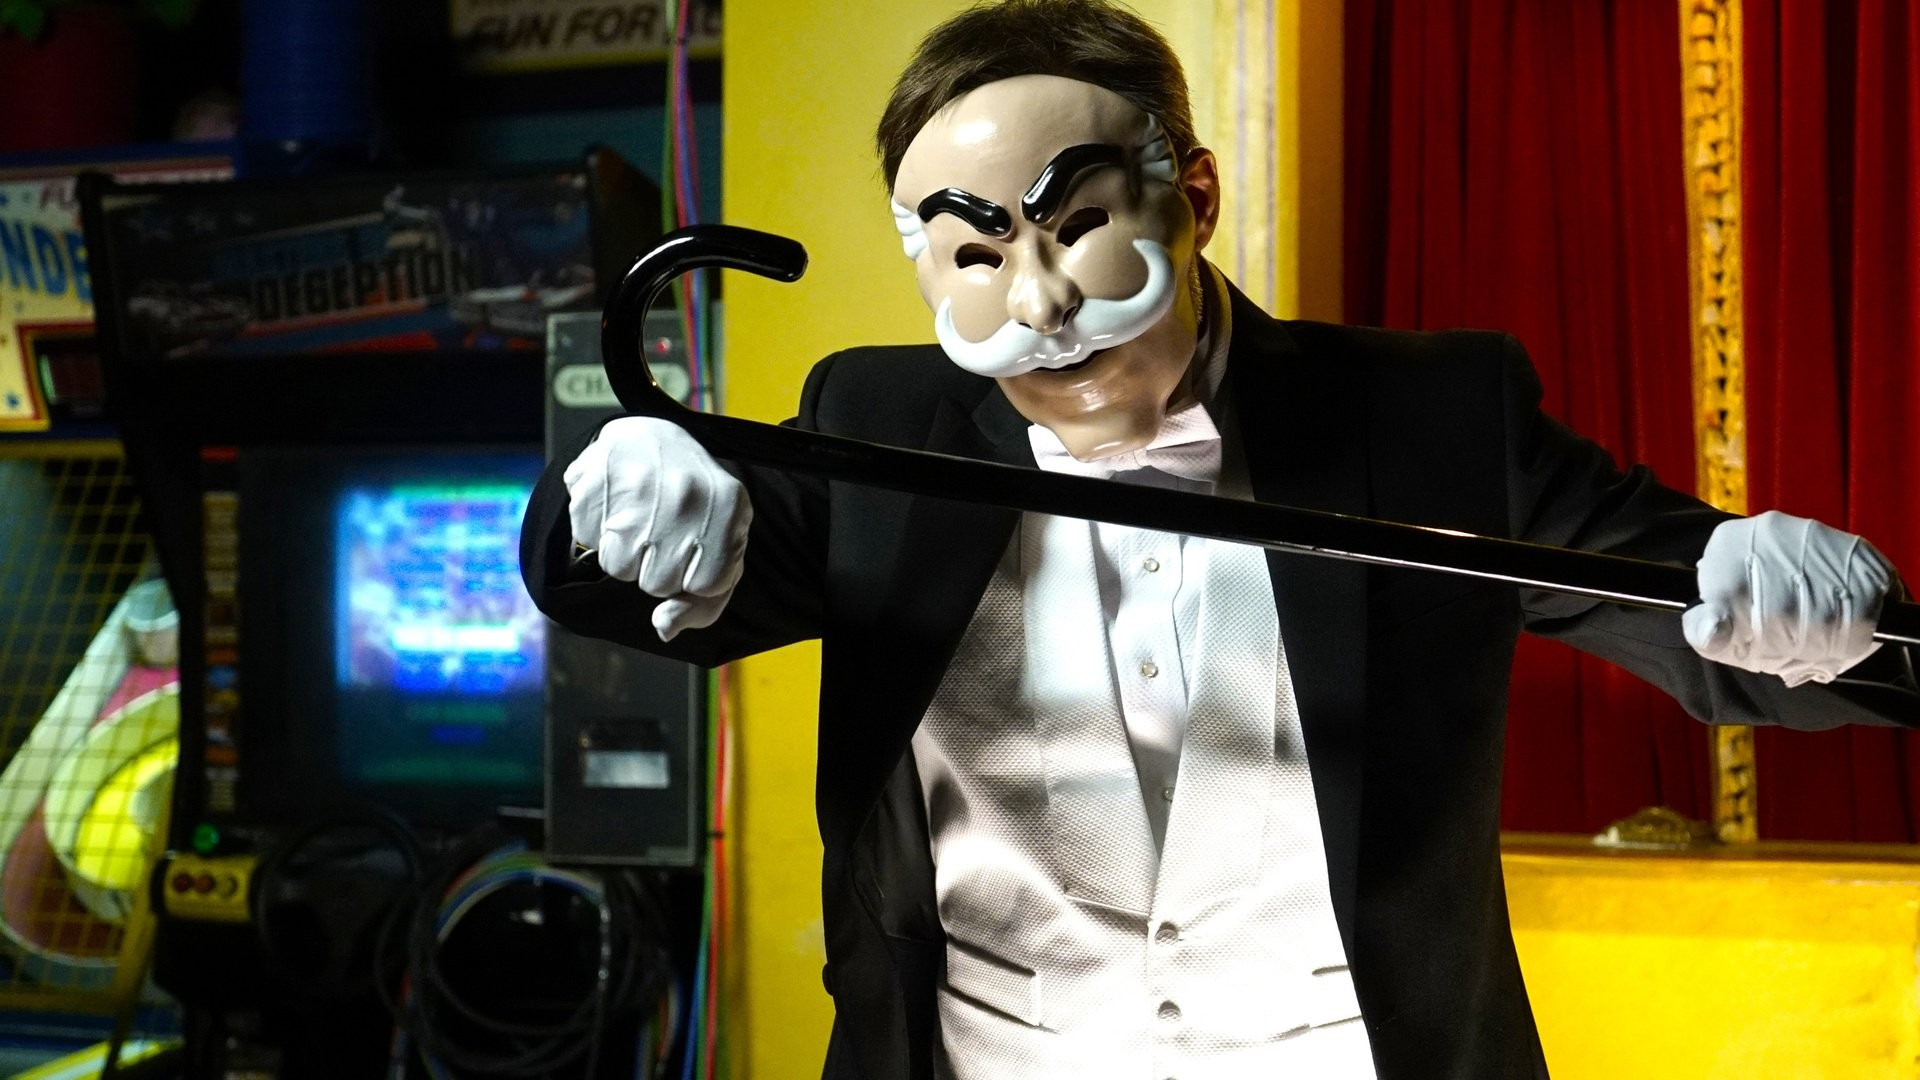 Mr Robot Mask